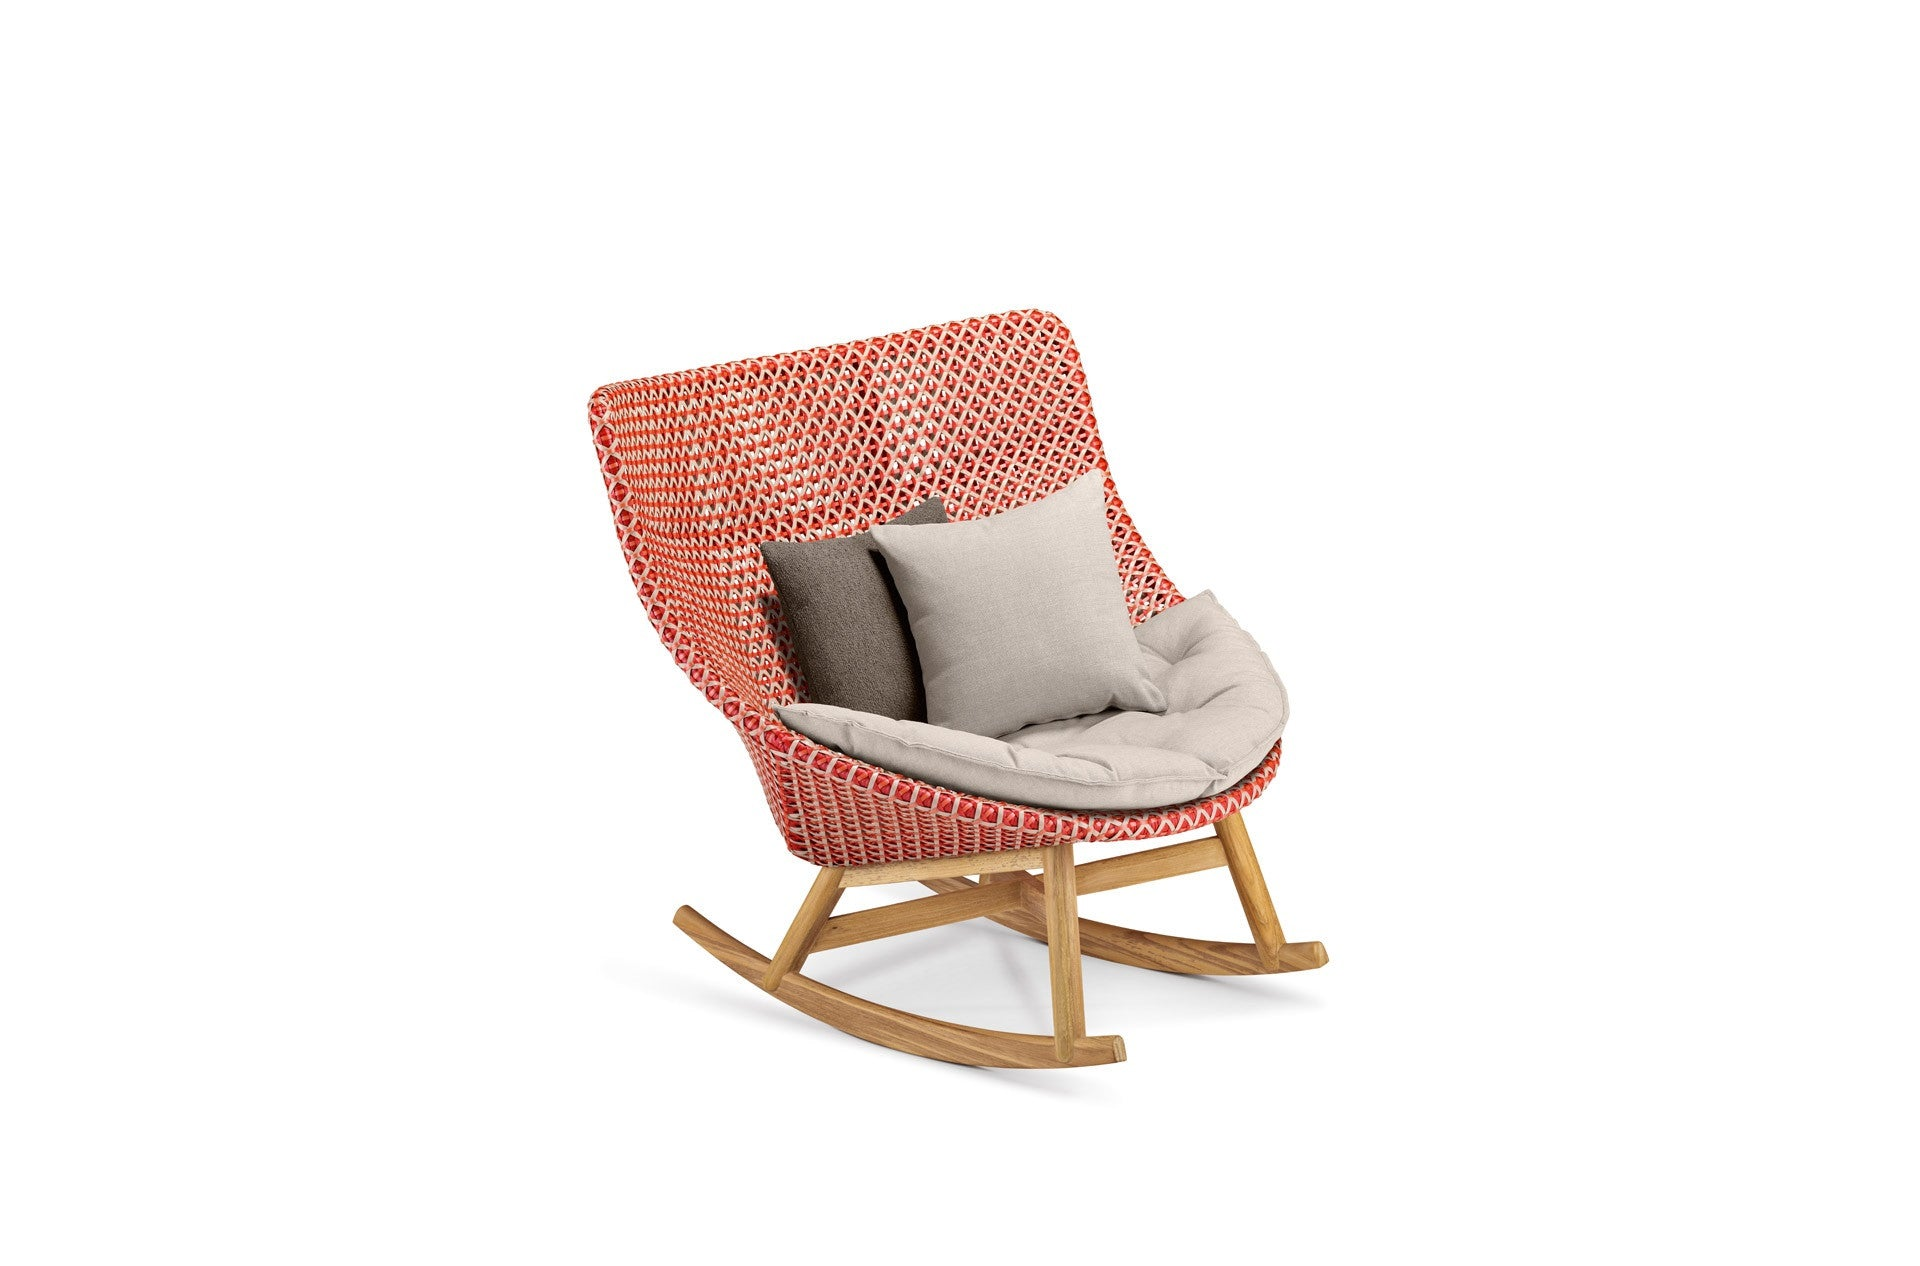 Mbrace Rocking Chair Chairs By Dedon At The Home Resource